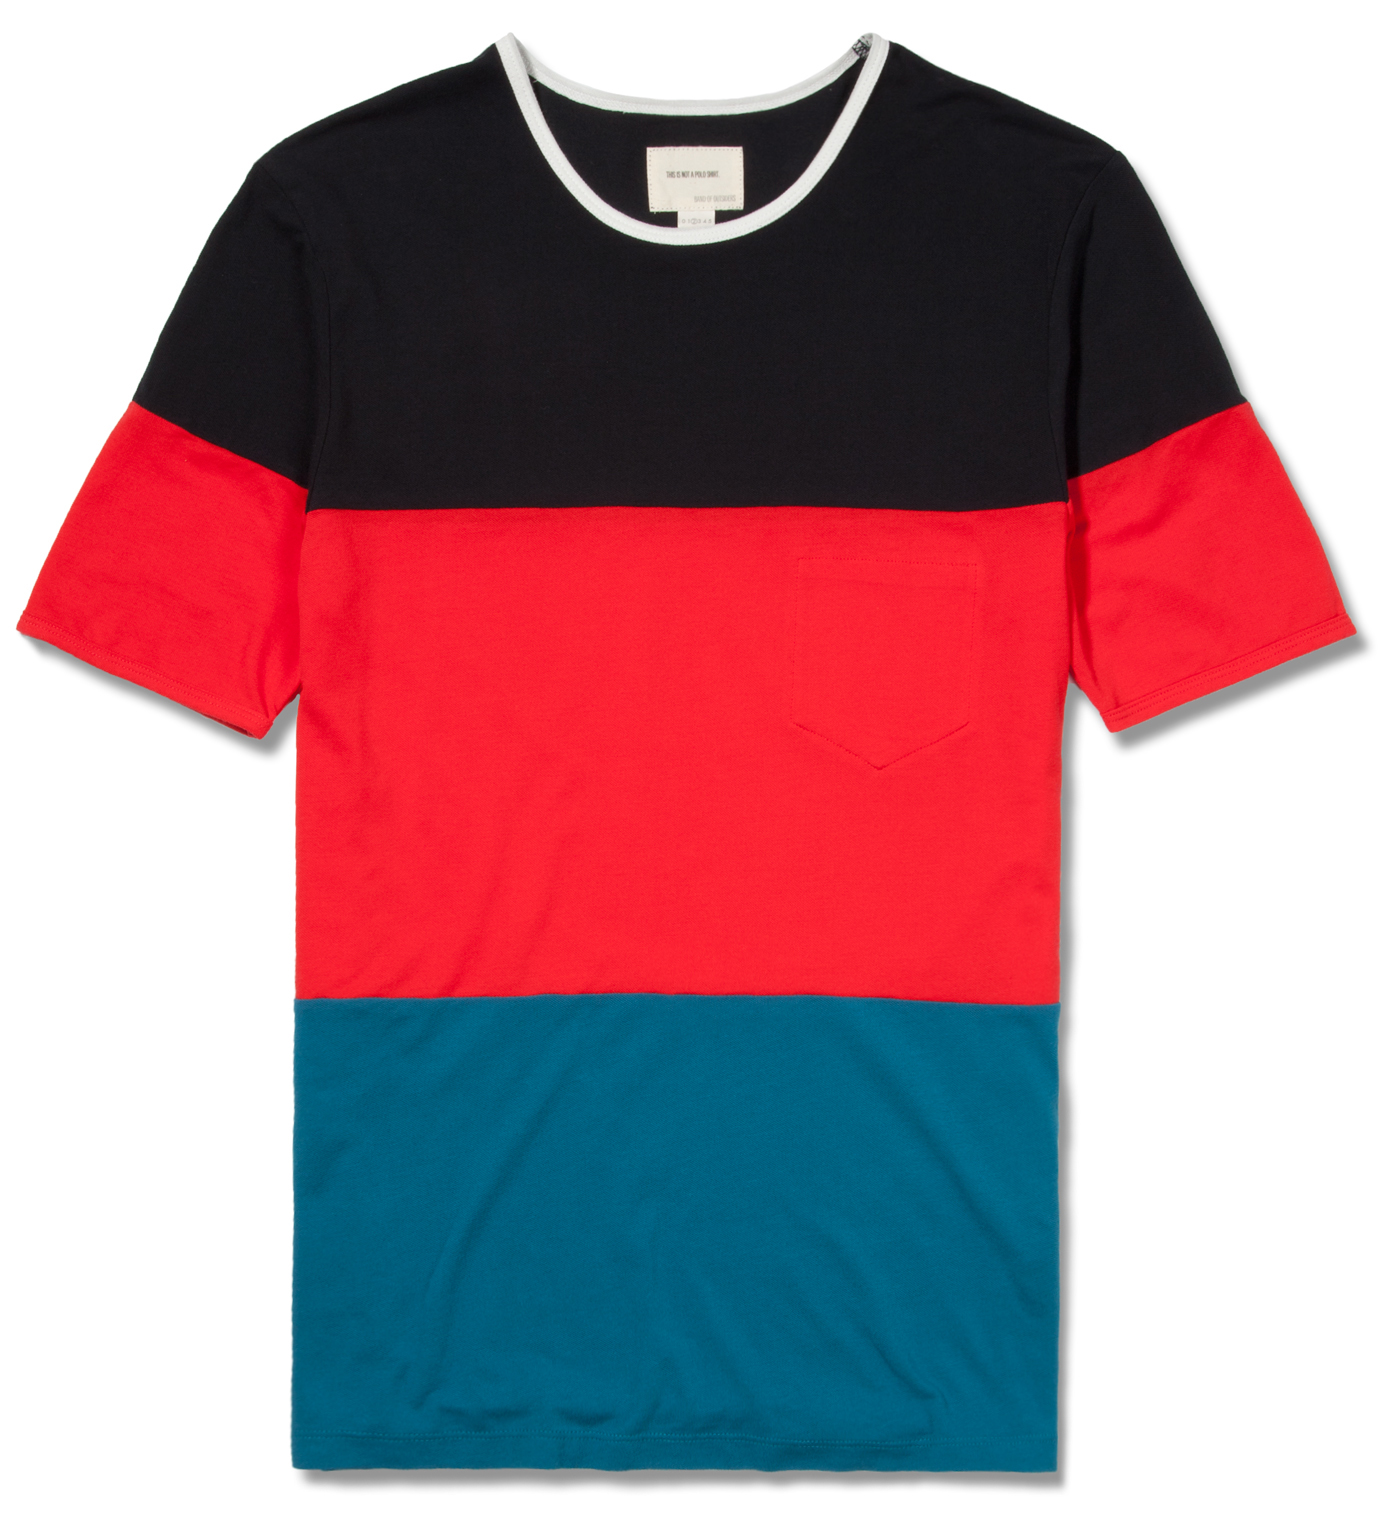 Band of Outsiders Red Pique Color Blocker T-Shirt